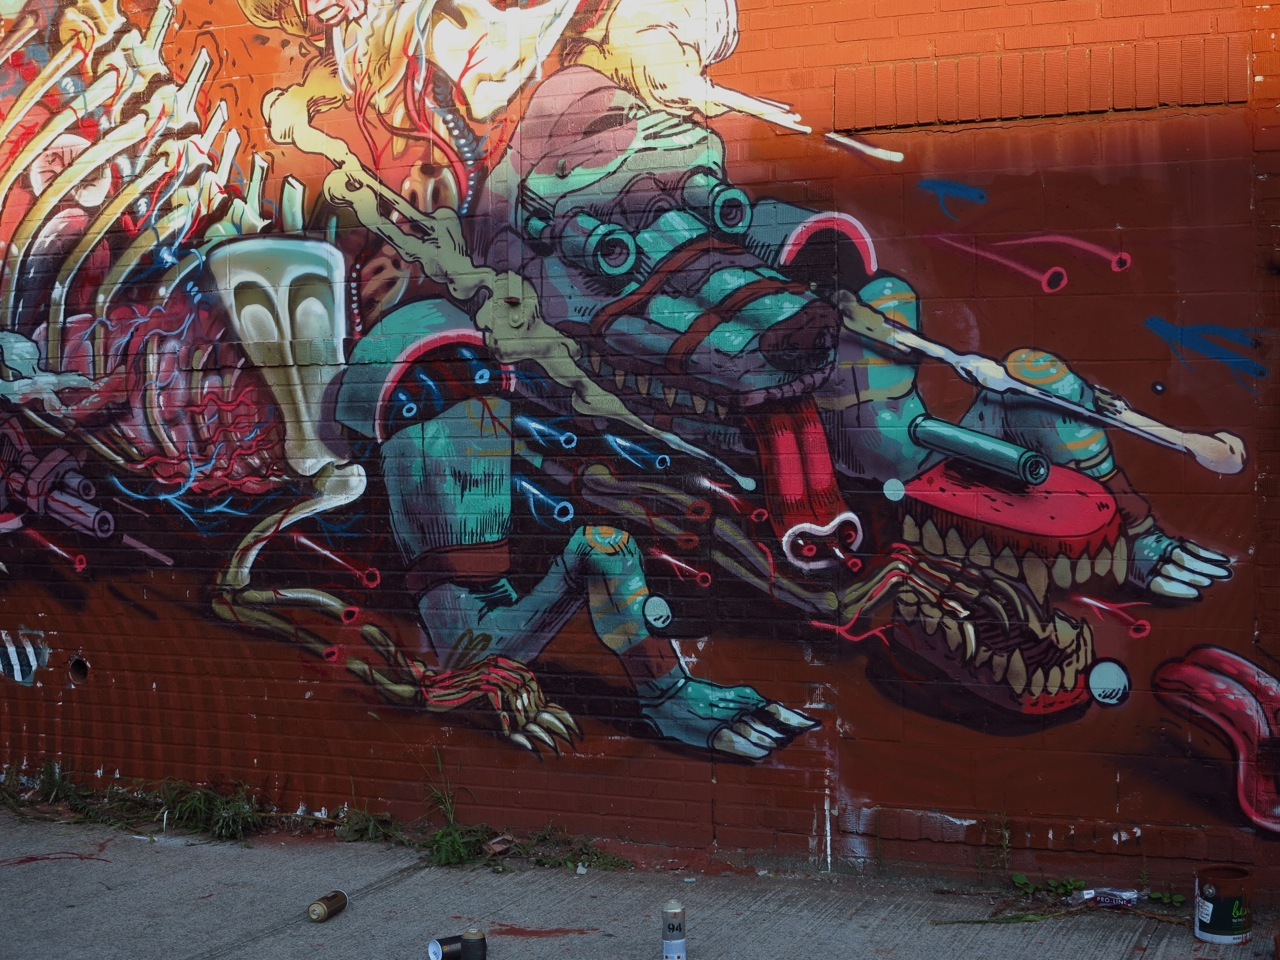 nychos-smithe-new-mural-in-new-york-usa-02